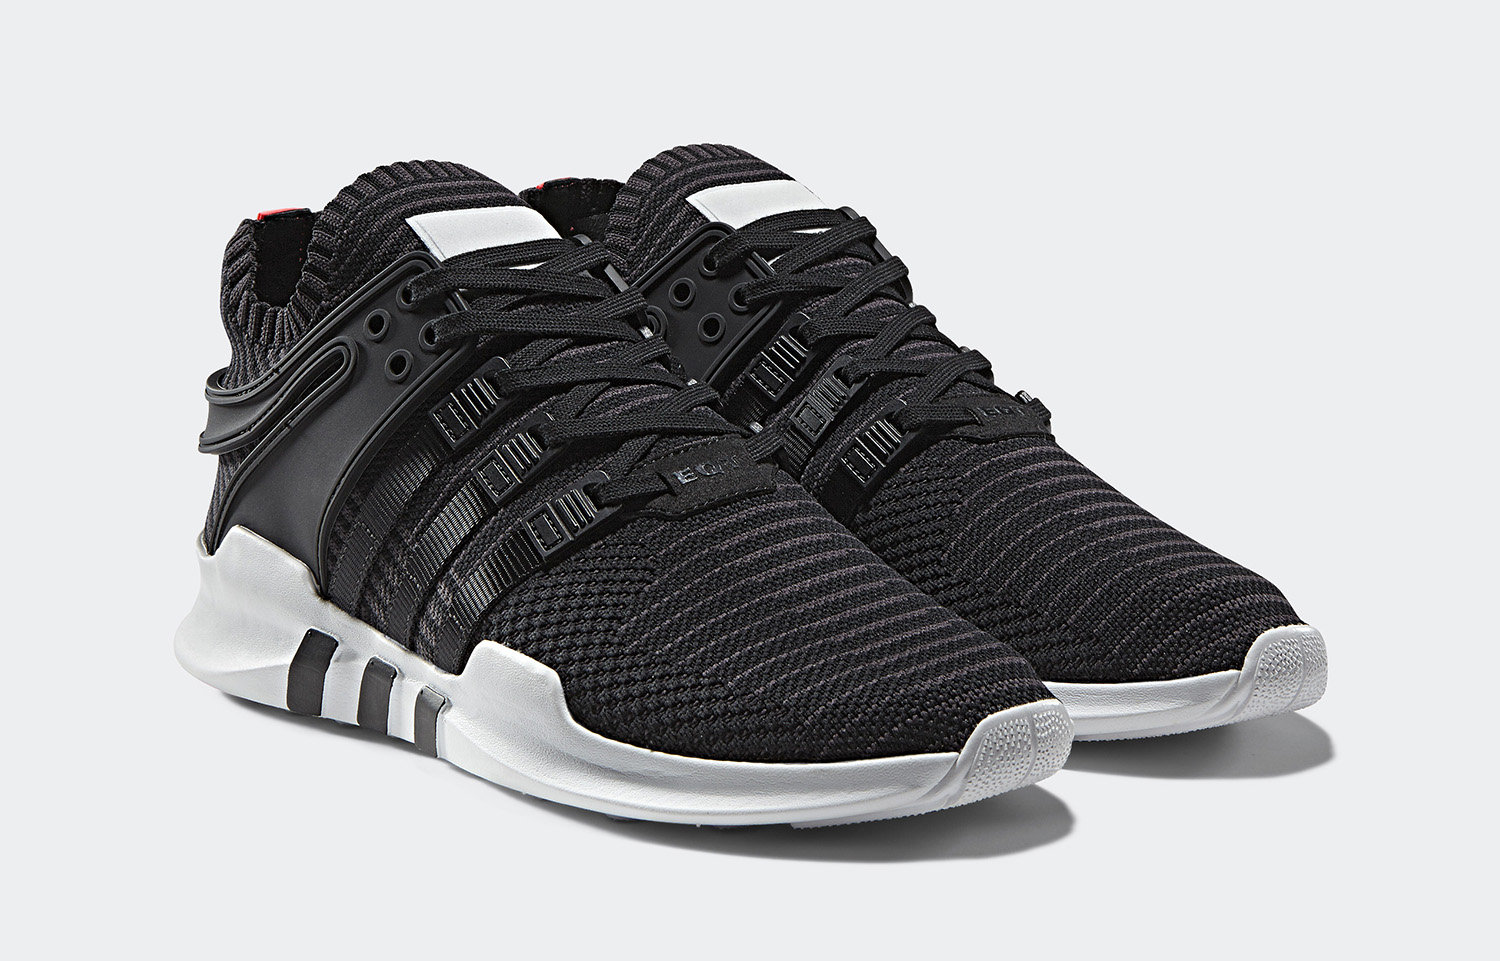 a0a9da73ab57 ... Adidas EQT Support ADV PK Black Turbo Red ...